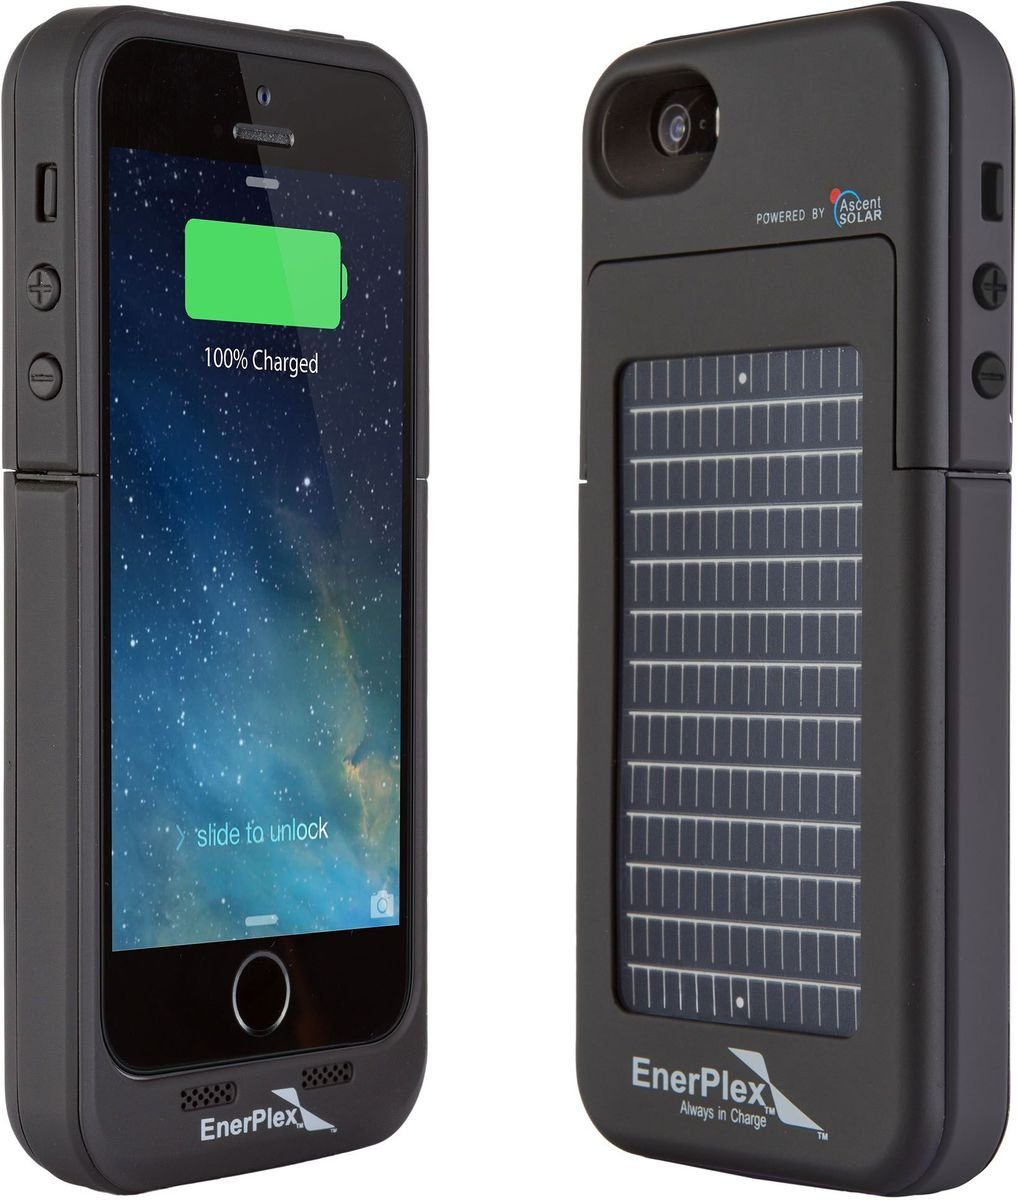 Enerplex Mobil Power »Surfr iPhone 5/5S/SE - Solarladecover«